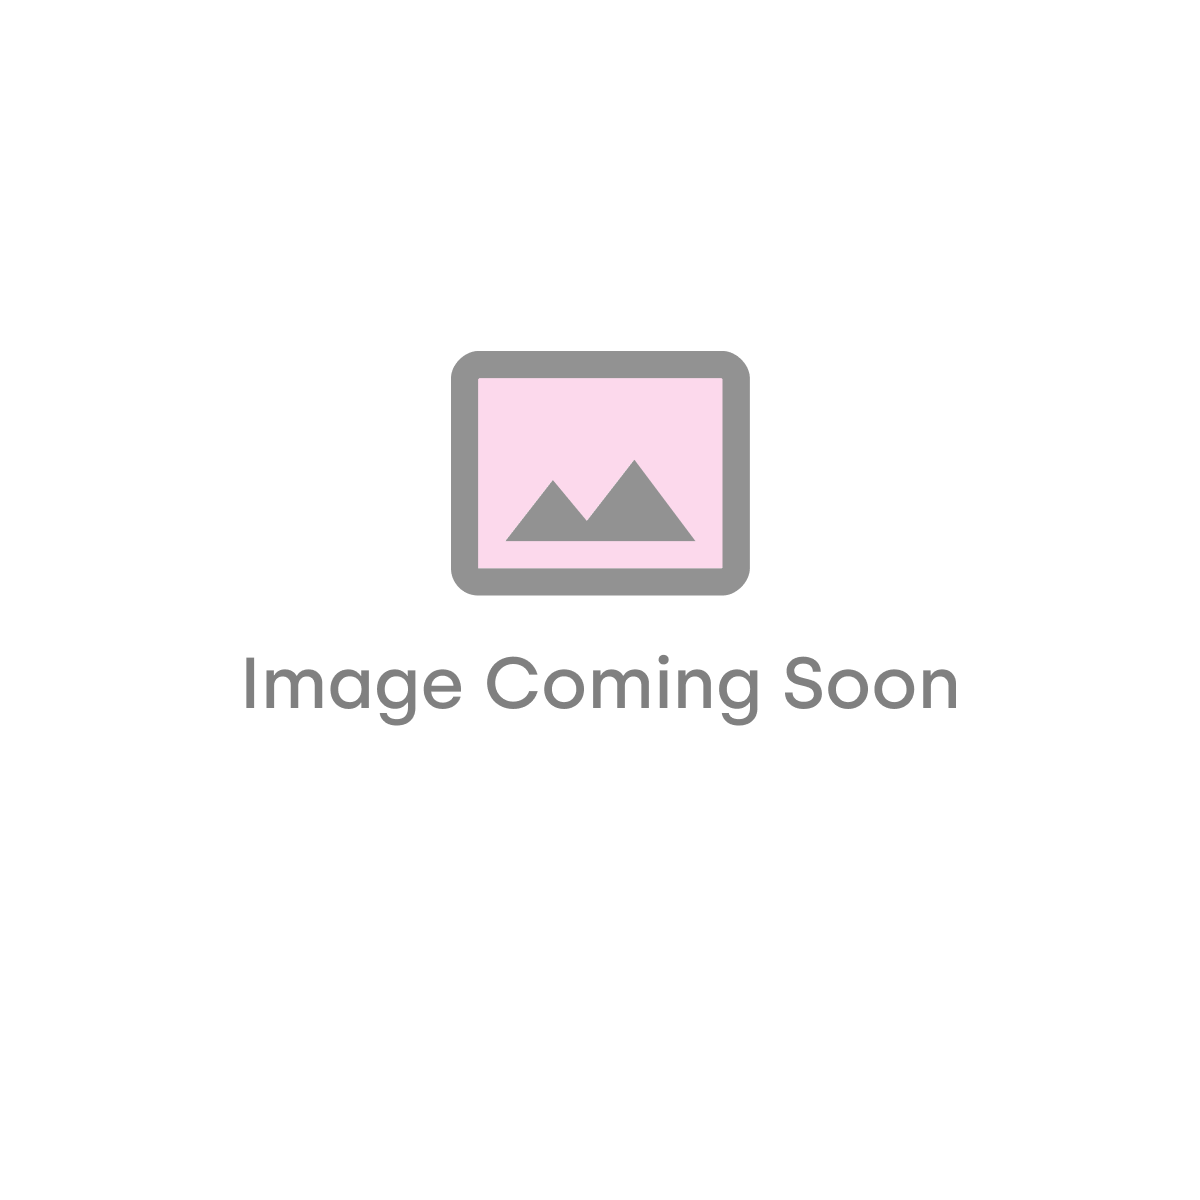 Empire Traditional Style Kitchen Sink Mixer with Swivel Spout & Single Lever - Brushed Copper Finish (19625)